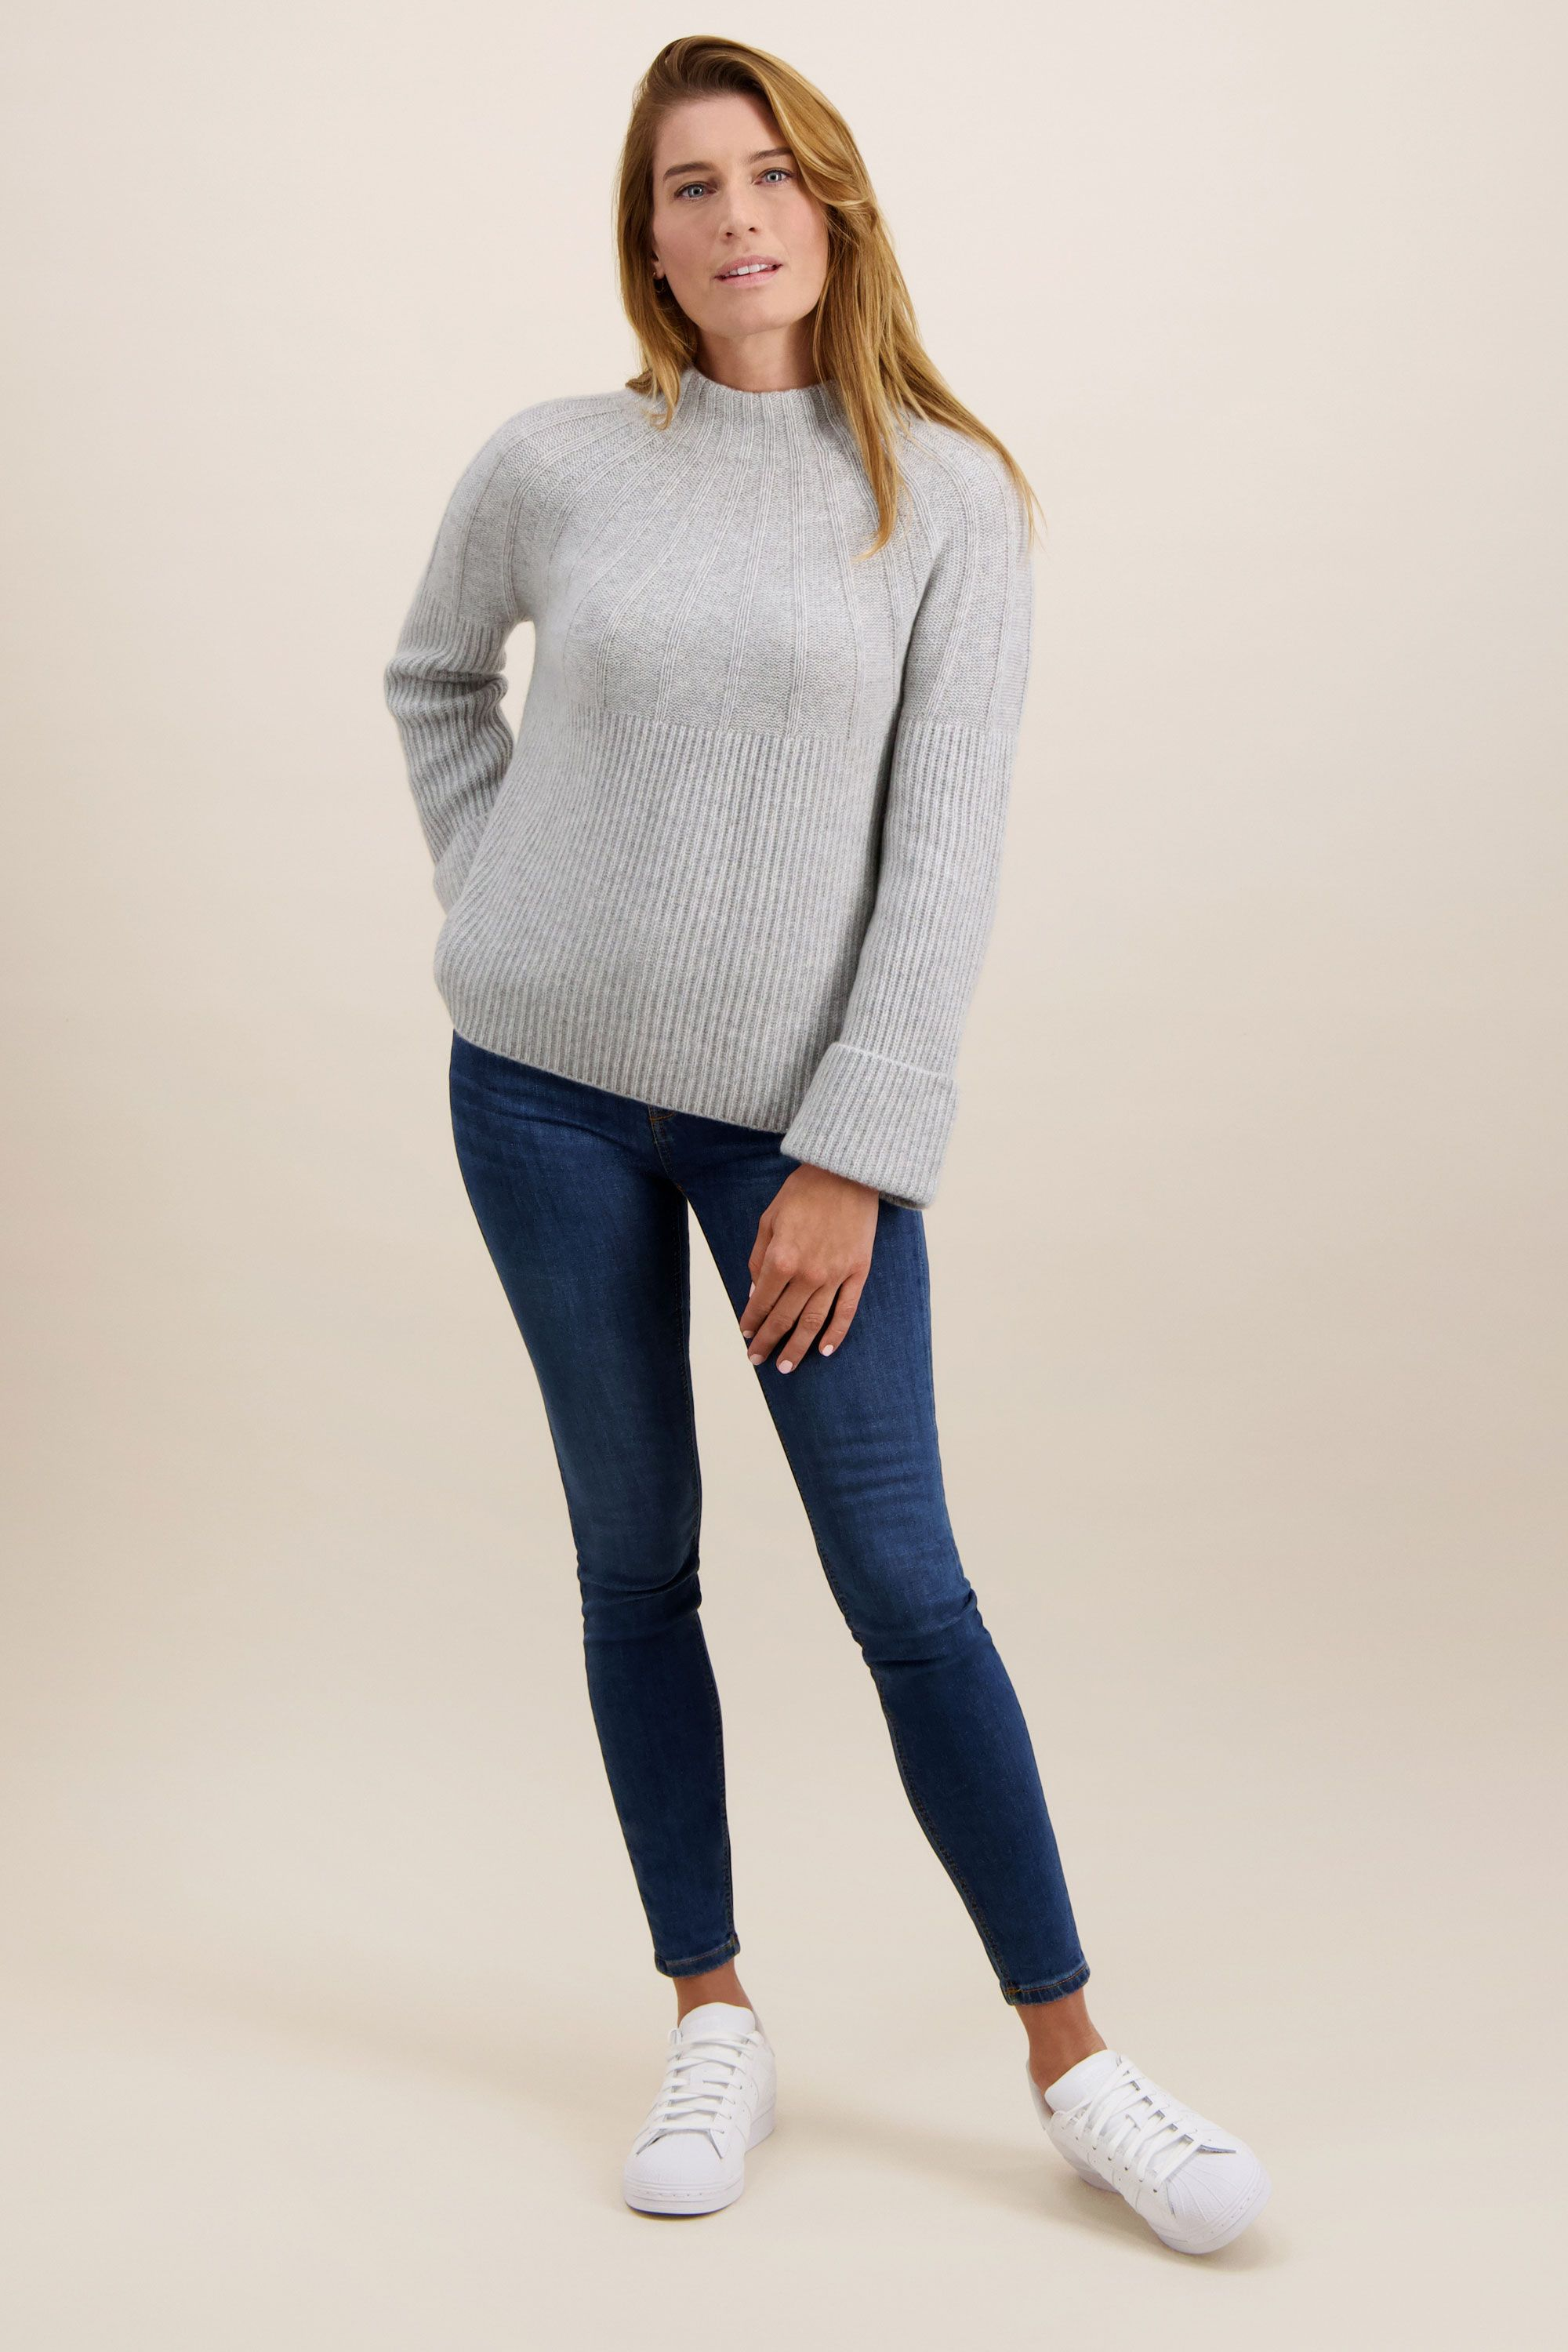 Cashmere Swing Sweater in Foggy